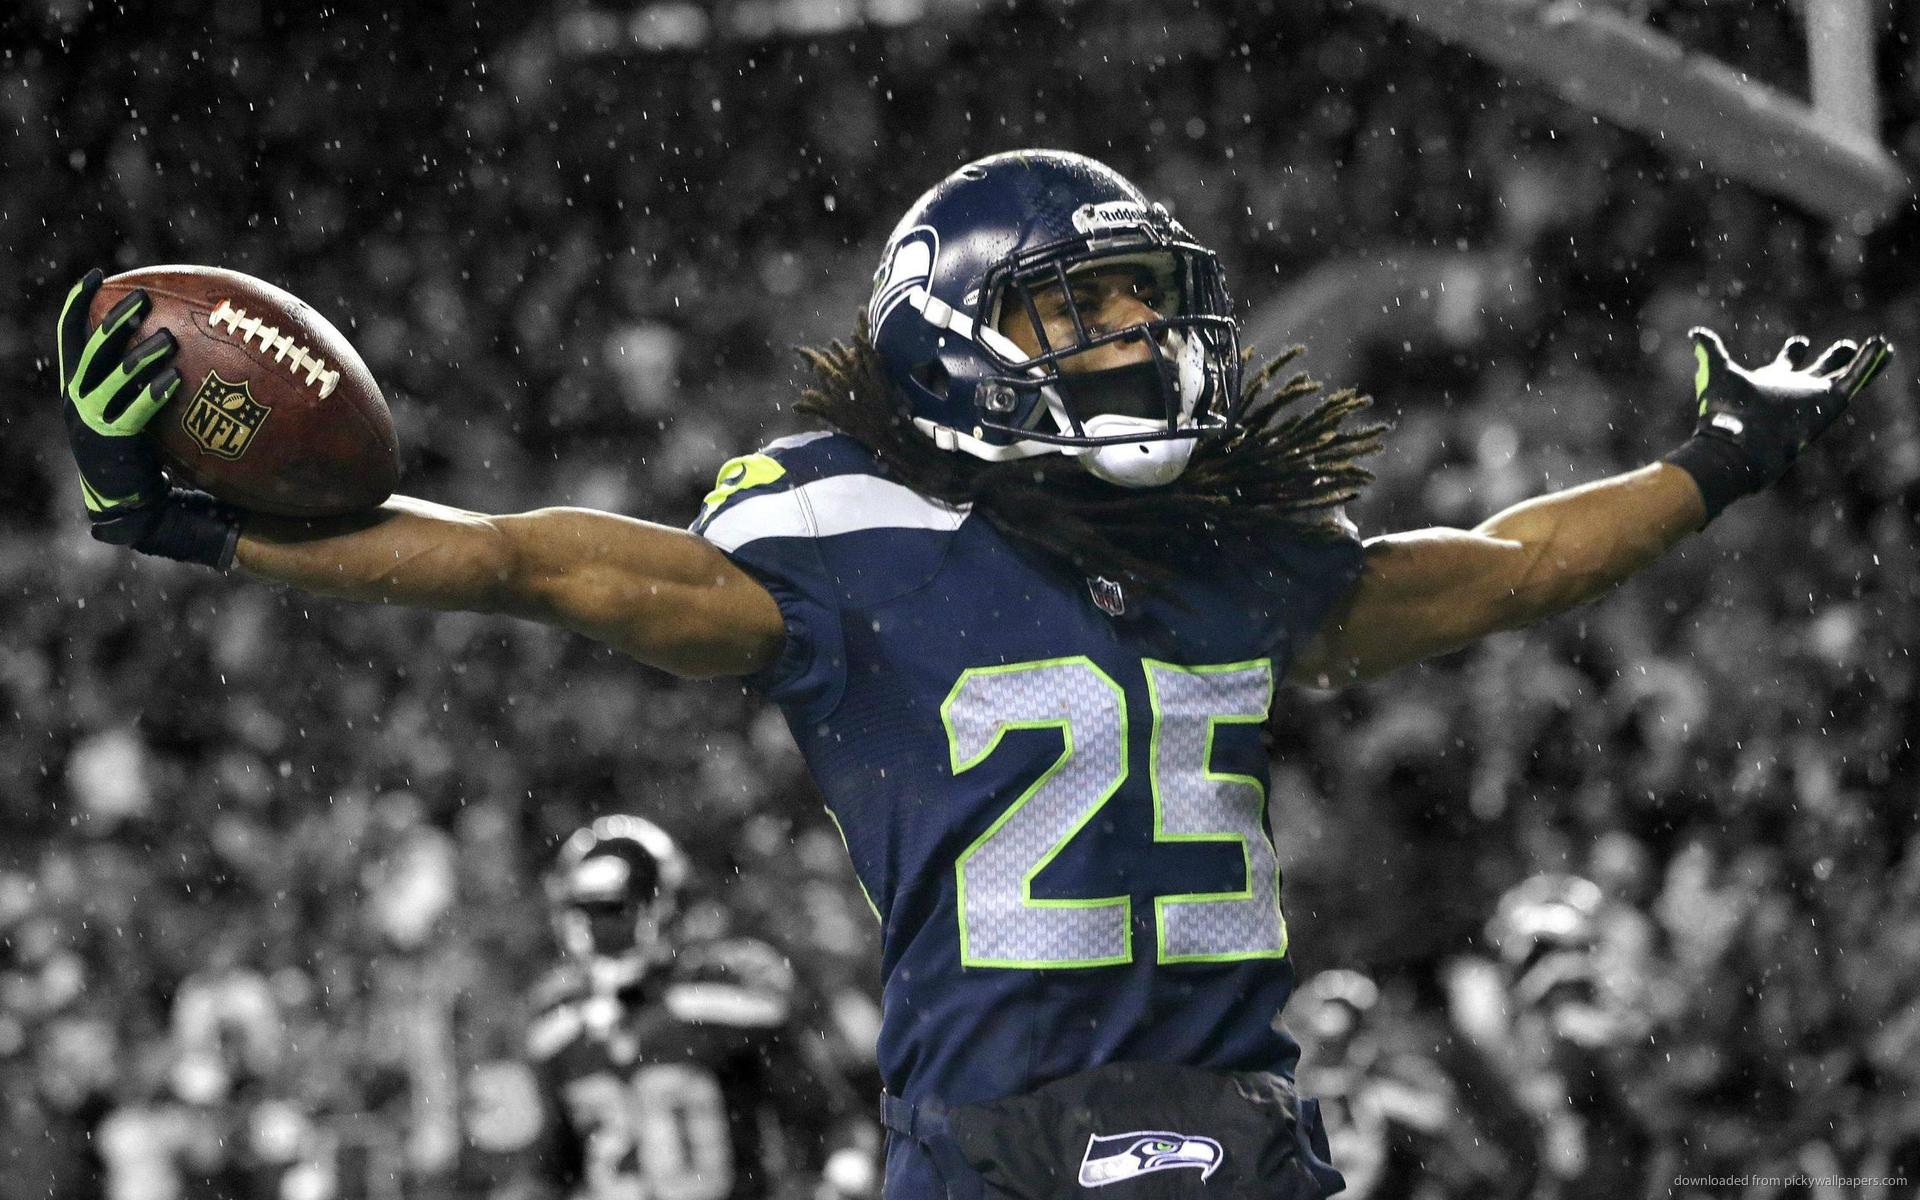 Download 1920x1200 Seattle Seahawks Richard Sherman Wallpaper 1920x1200